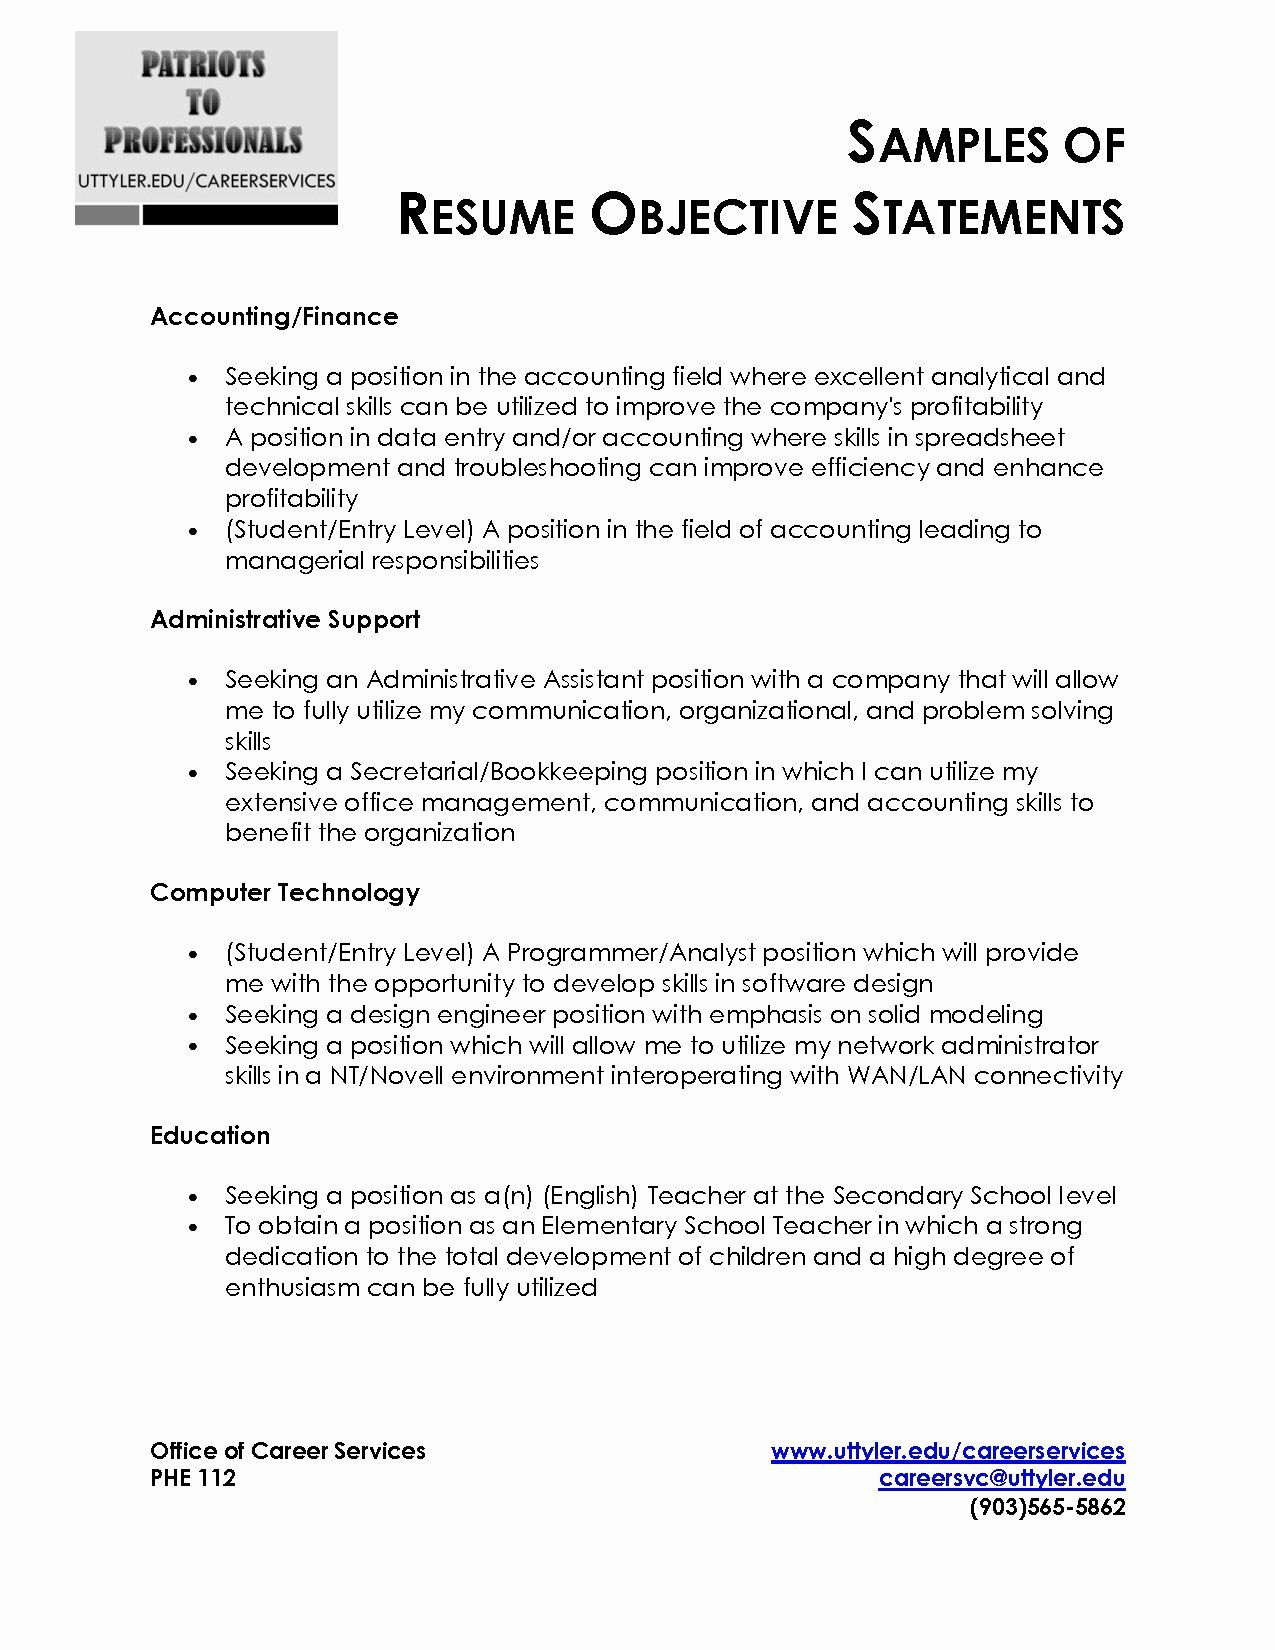 Law School Personal Statement Examples Resume Objective